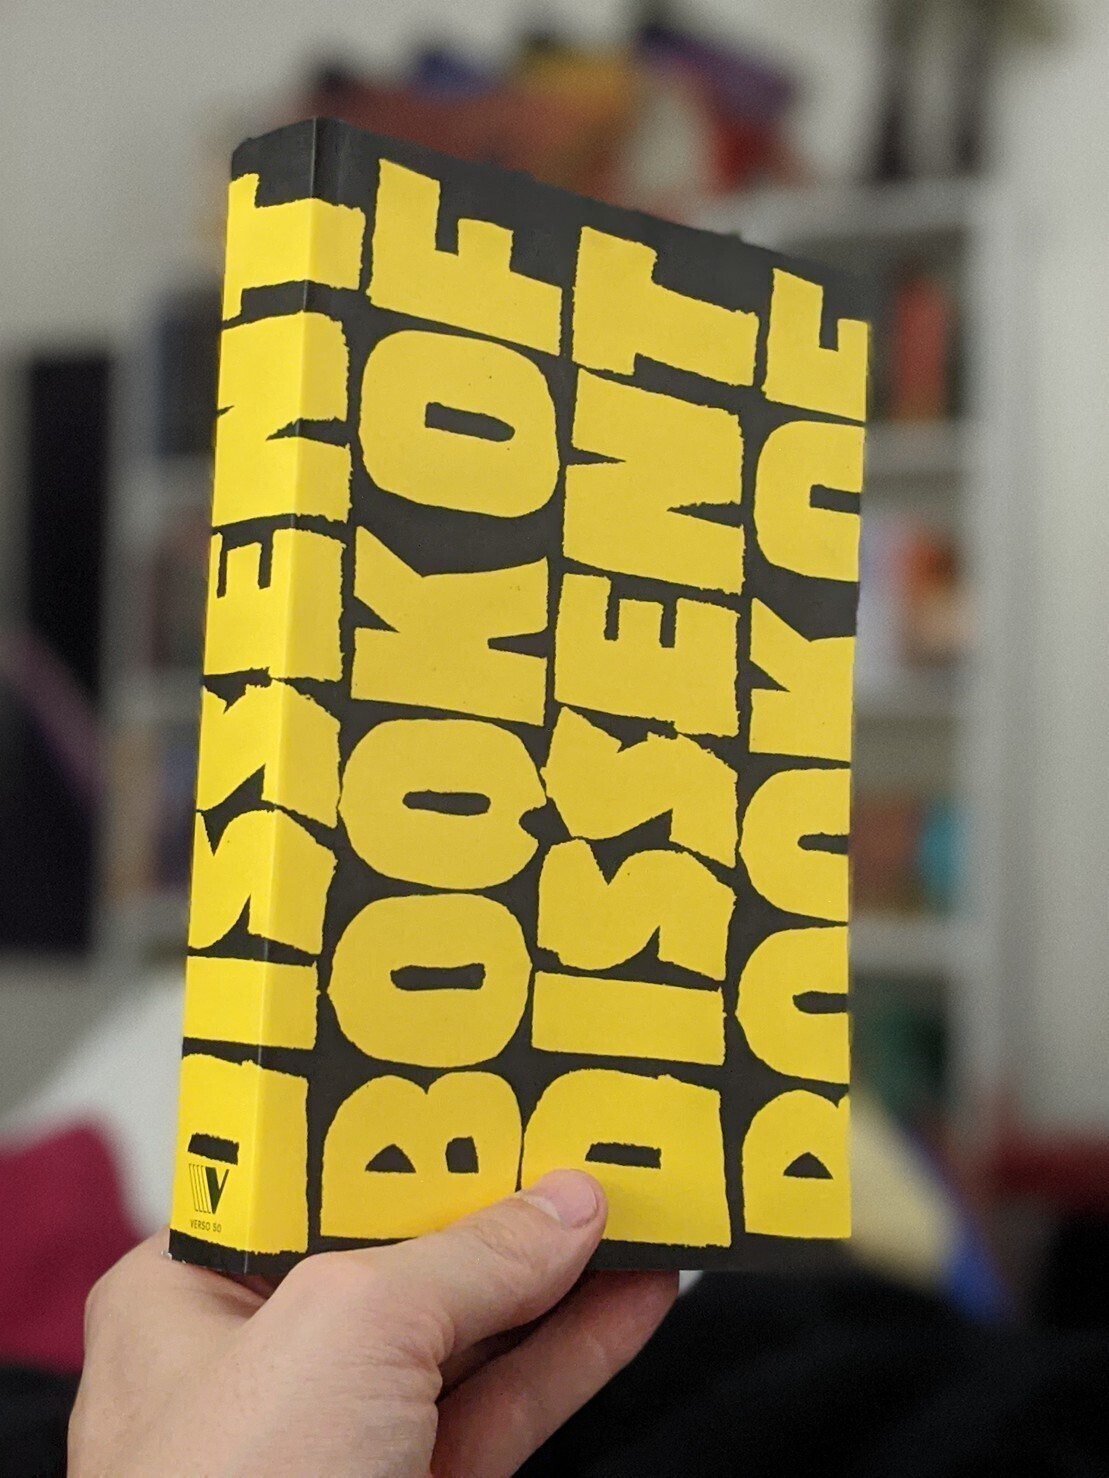 Picture of a book cover.